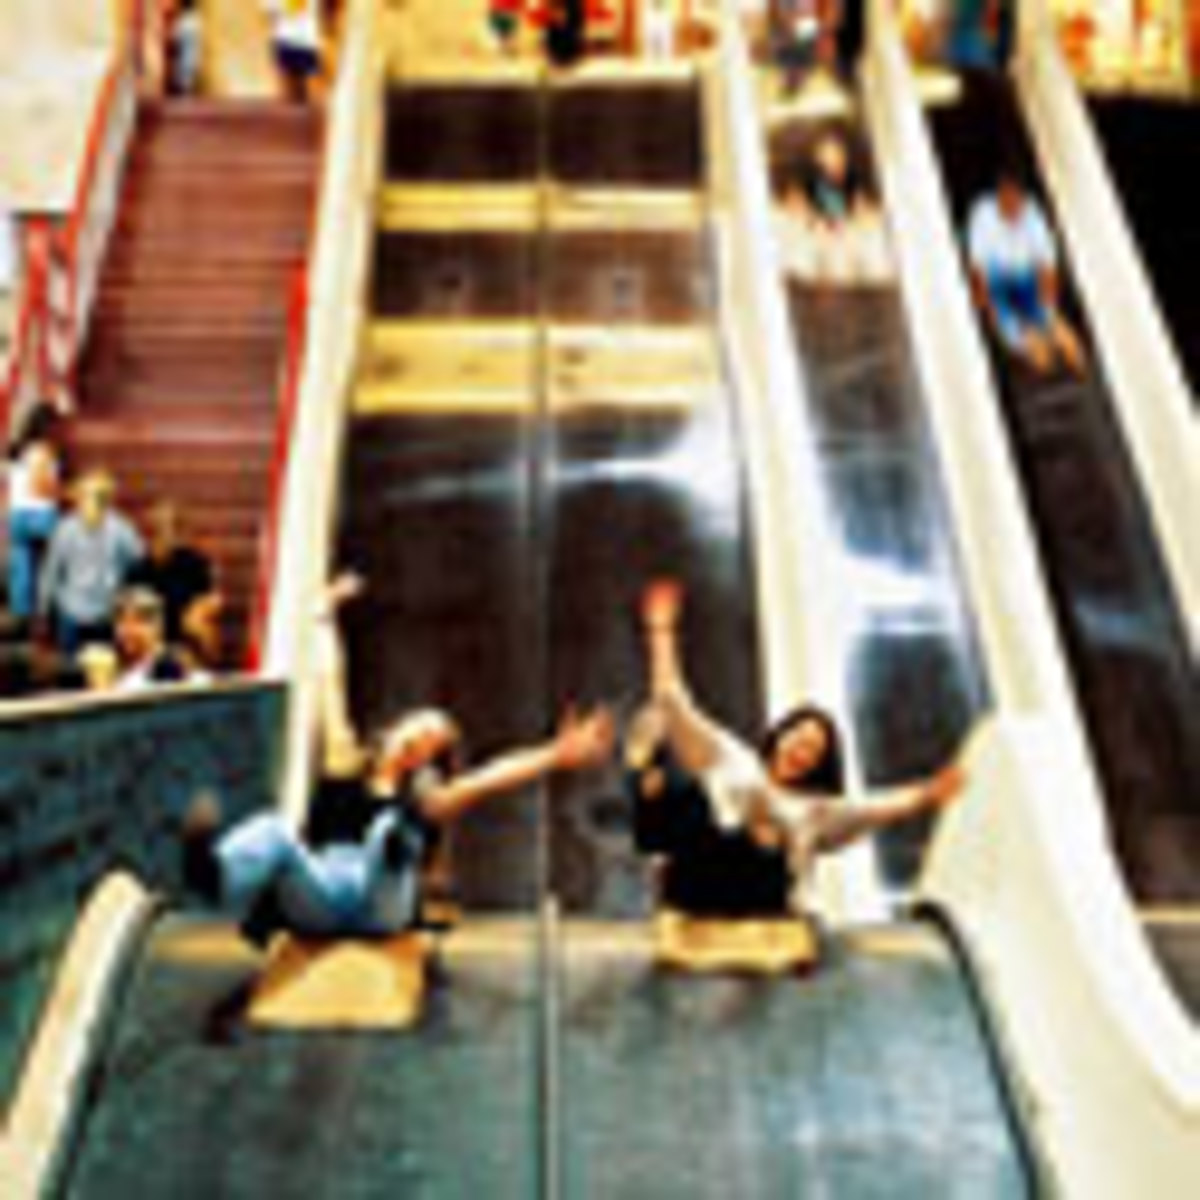 The Big Slide in side Steeplechase and when you got to the bottom alllot of spinners on a polished wood floor.